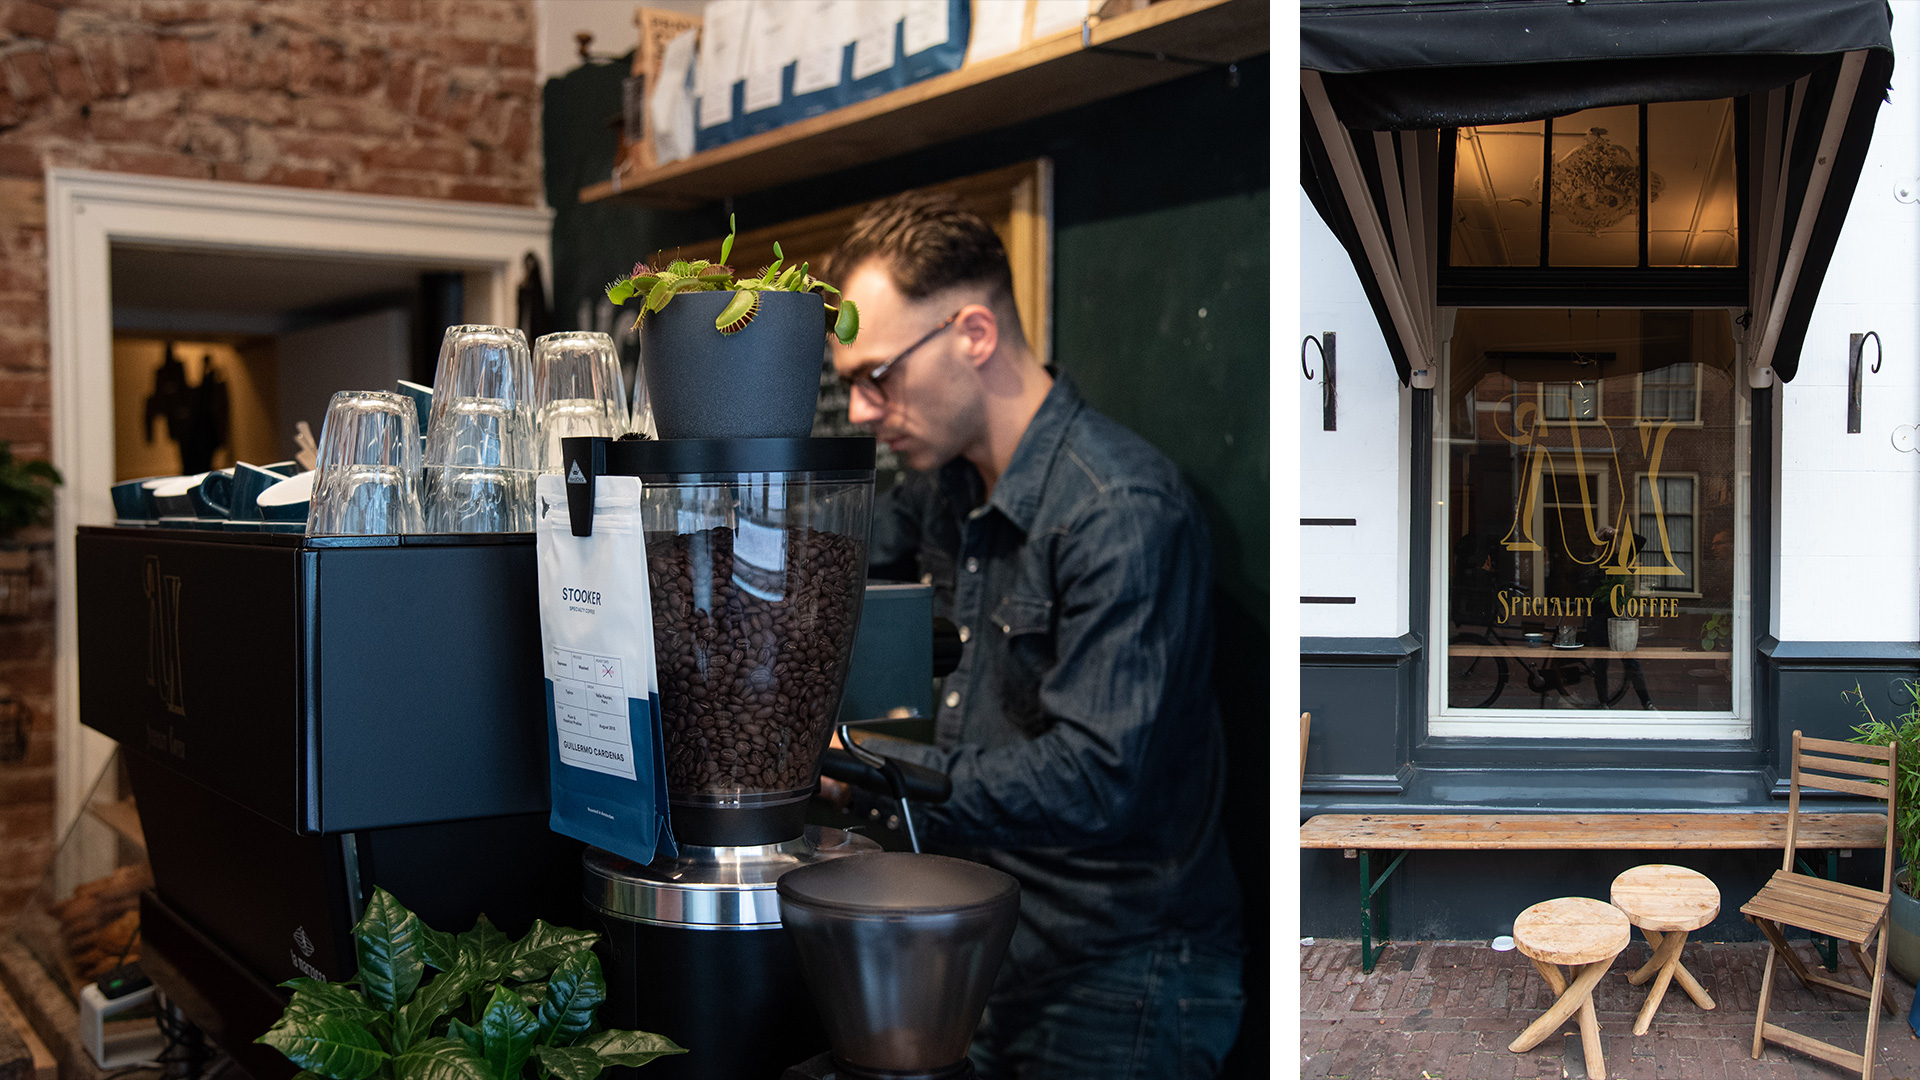 AX specialty coffee - Haarlem